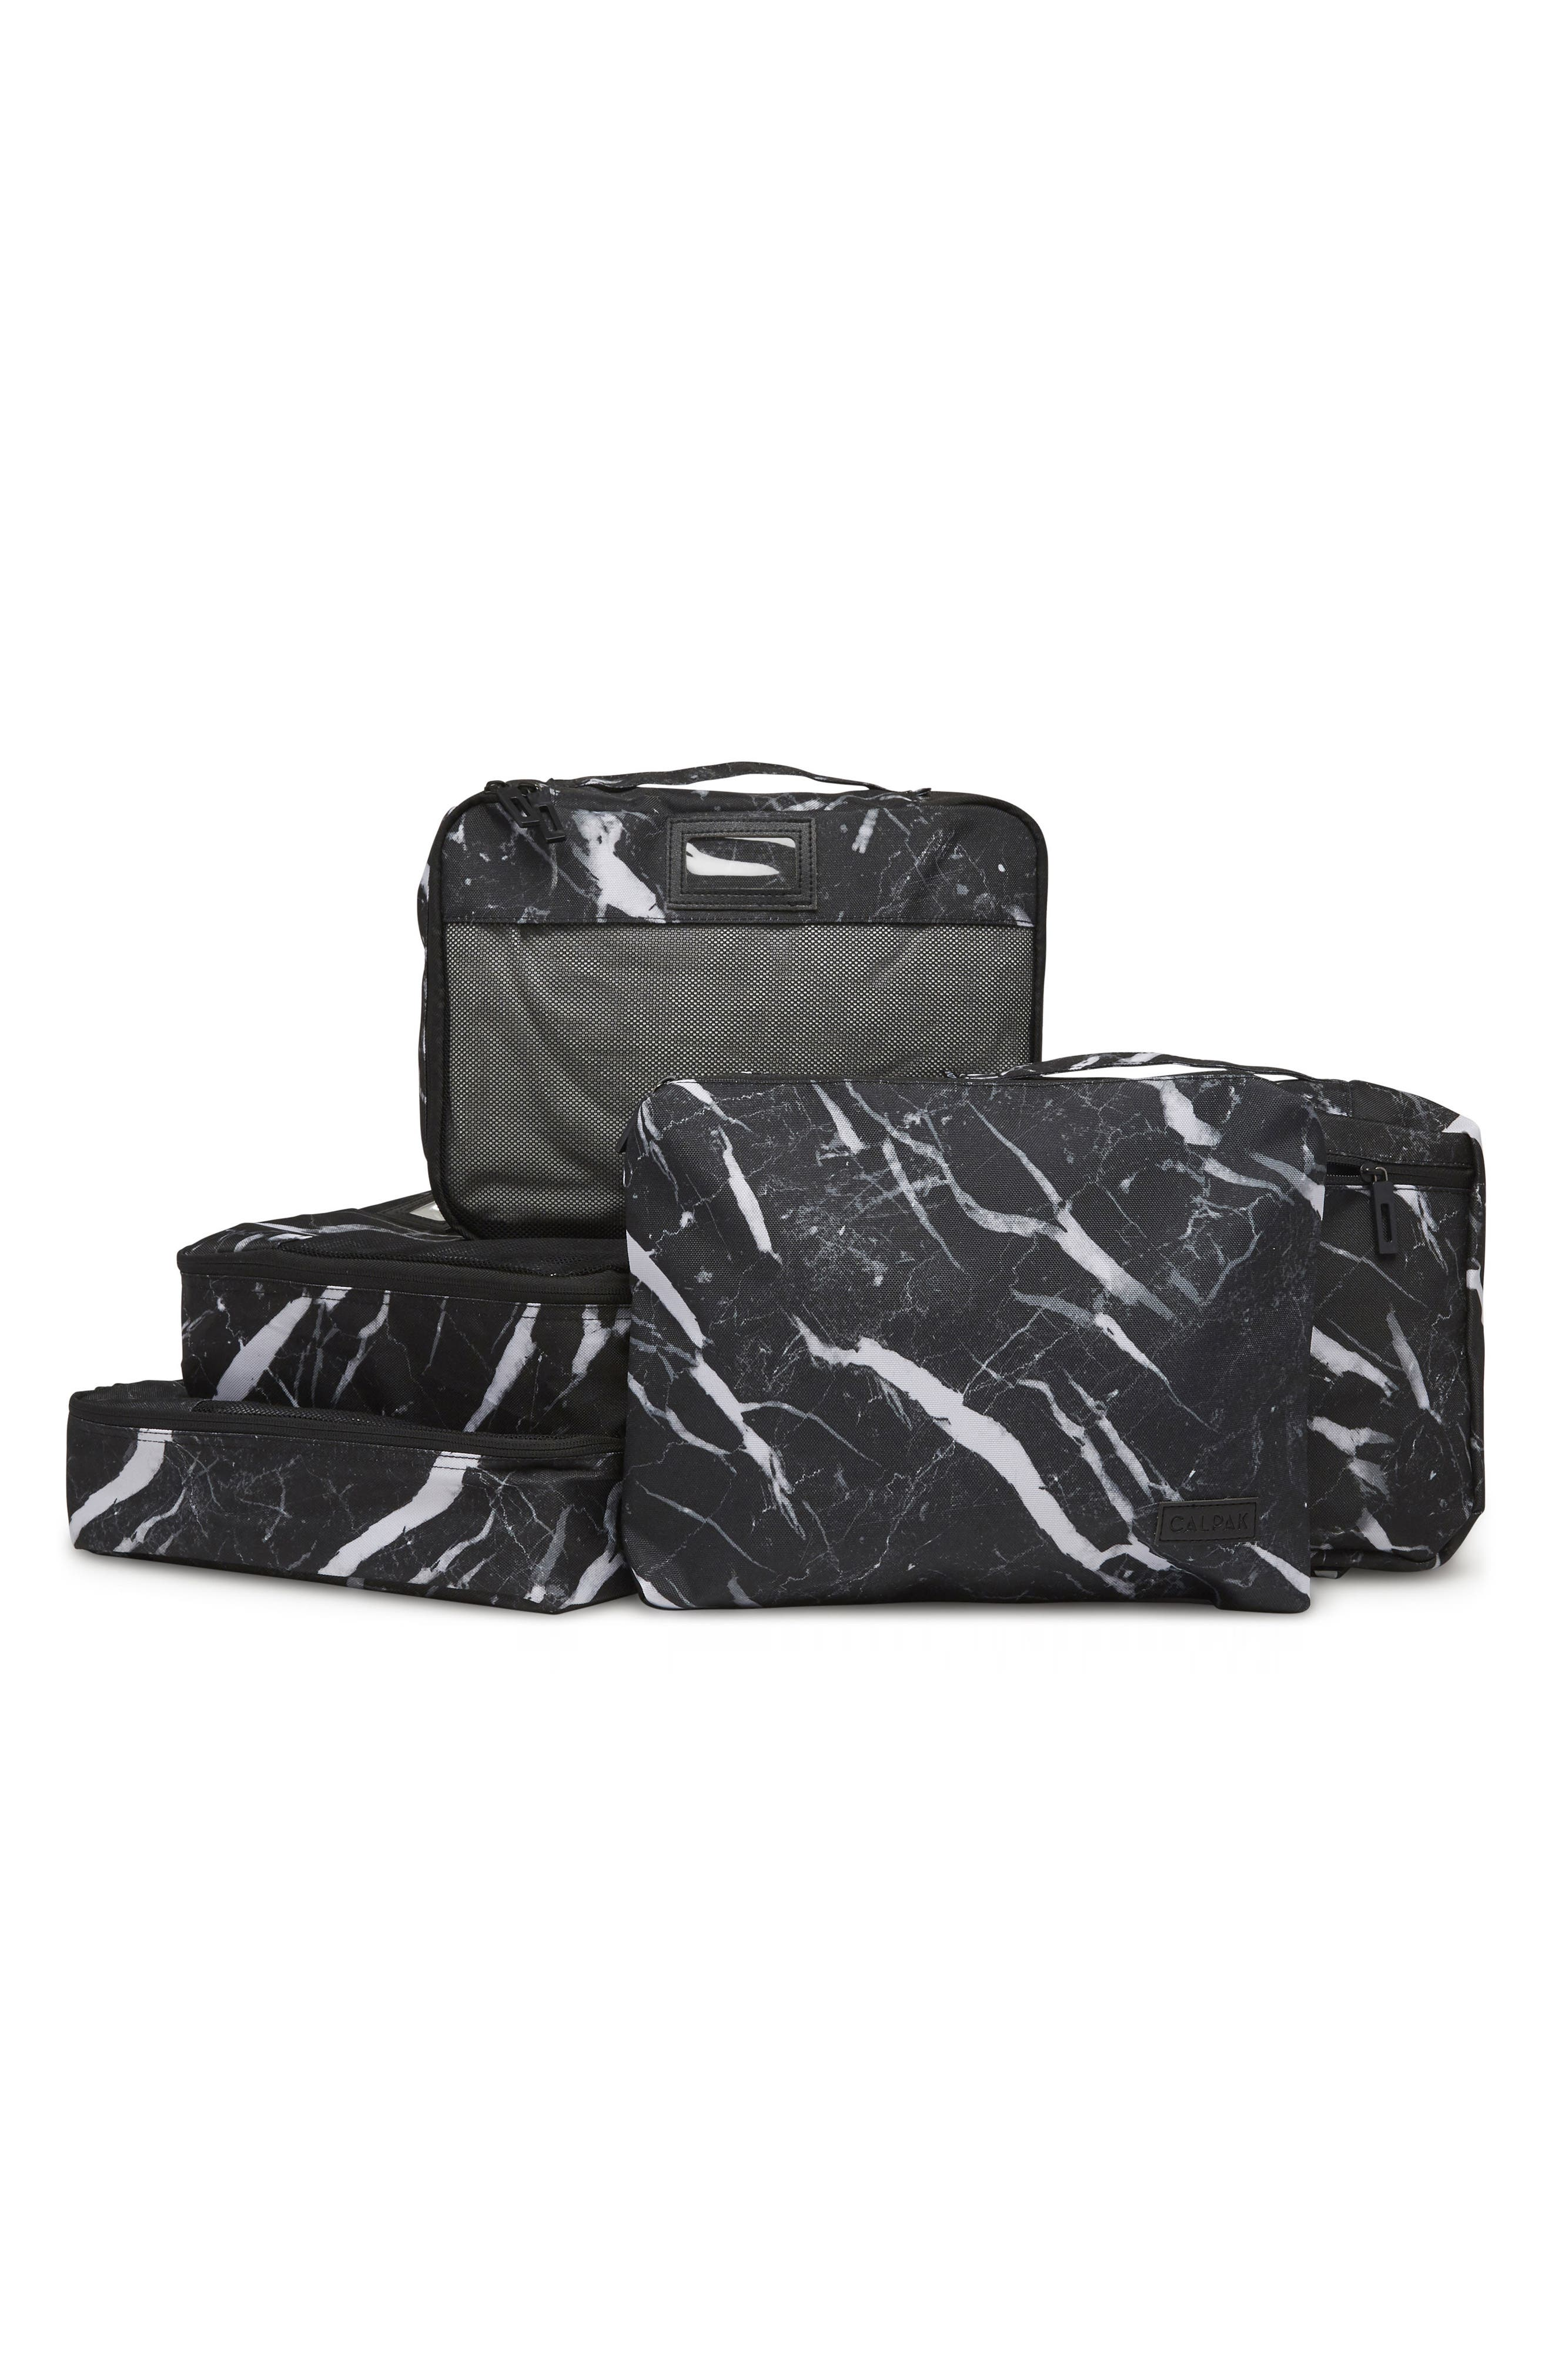 5-Piece Packing Cube Set,                             Main thumbnail 1, color,                             MIDNIGHT MARBLE